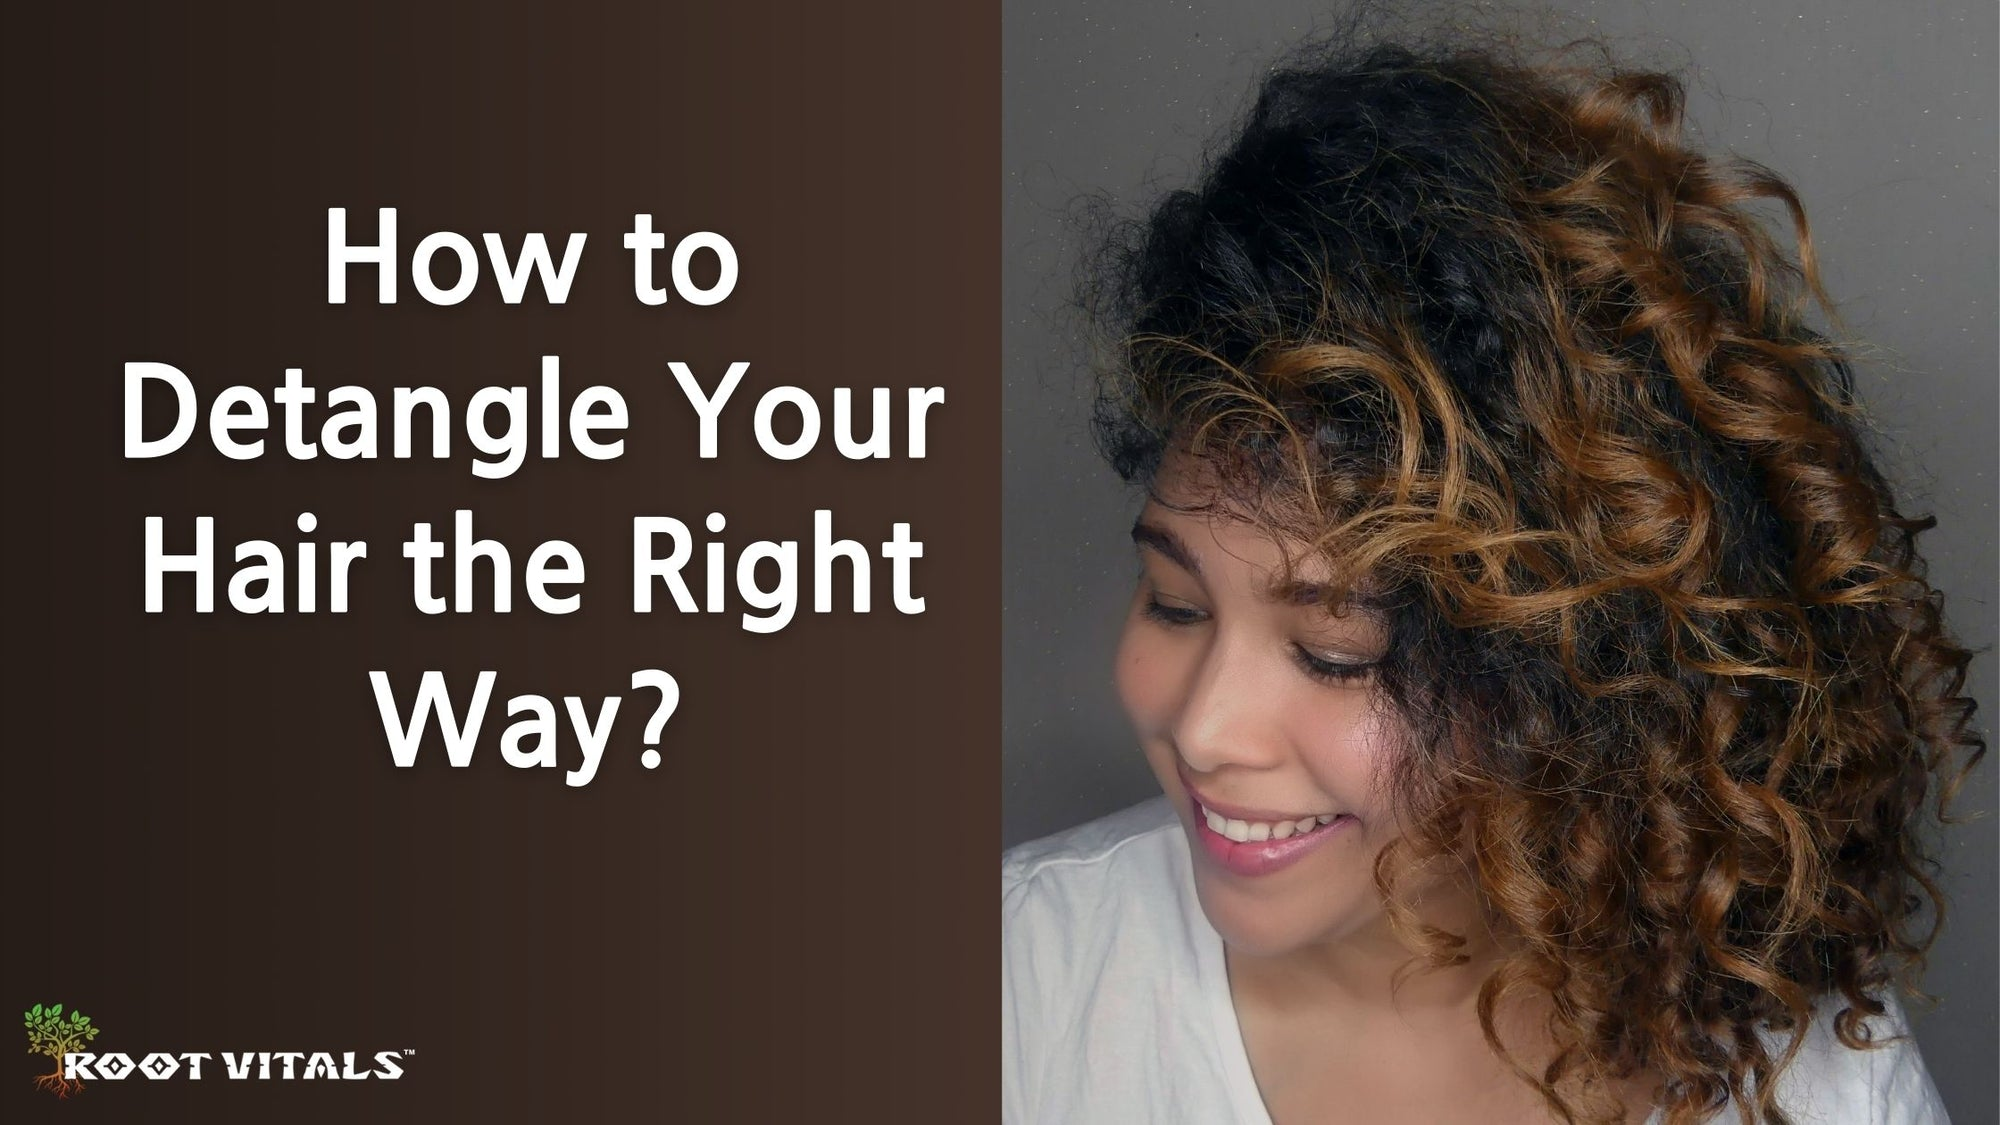 Detangle your hair from end to root the right way